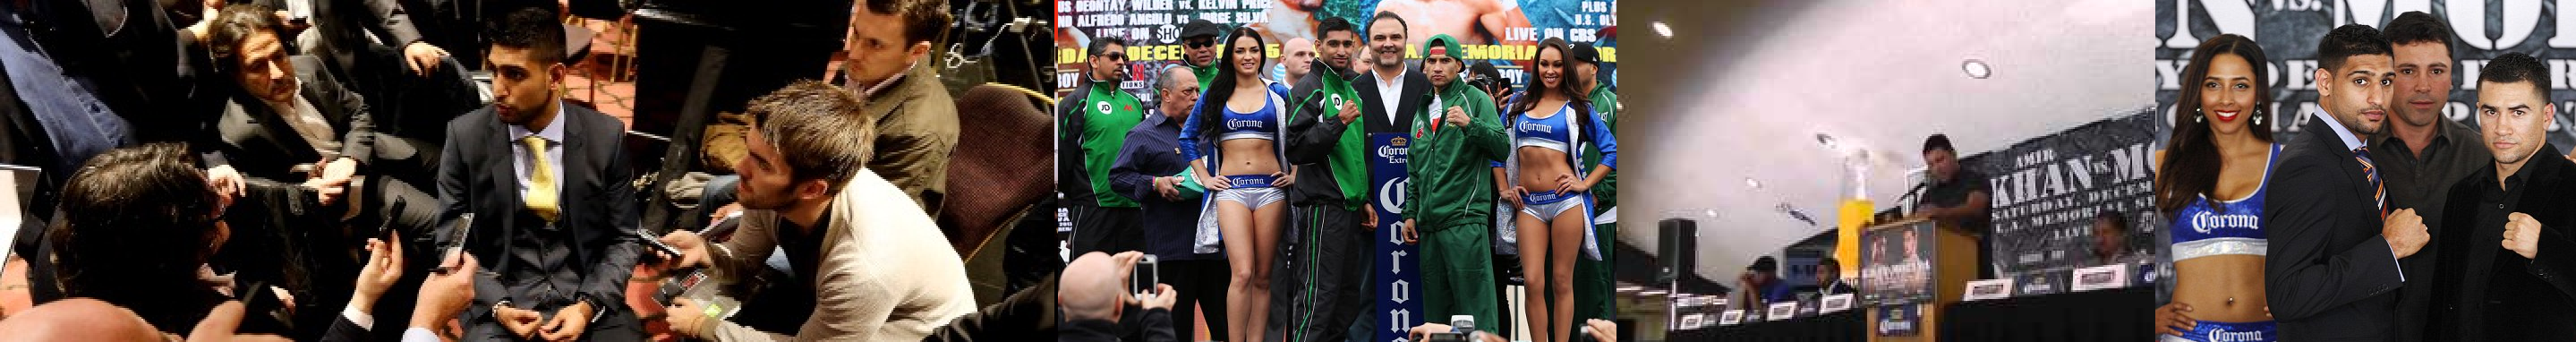 sincura manage press conference for amir khan vs carlos molina